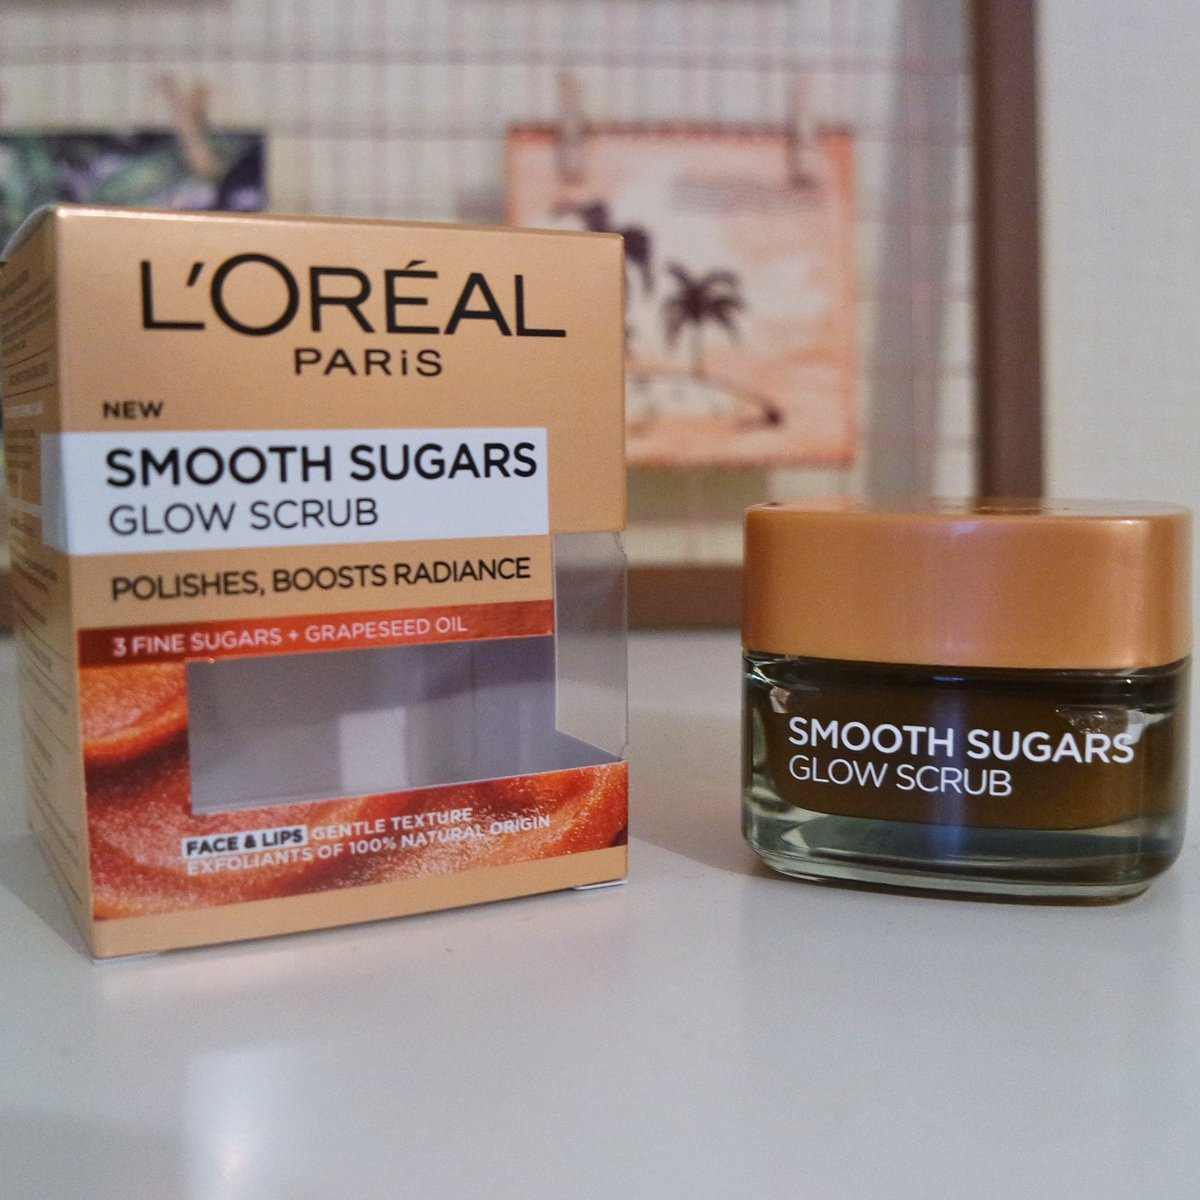 Hey Guys! Check out my first impressions and review of L'Oreal's Smooth Sugar Glow Scrub http://www.houseofheight.co.uk/2018/01/loreal-smooth-sugar-glow-scrub-review.html… #Loreal #firstimpressions #review #beautyreview #sugarscrub #exfoliate #beauty #beautyblogger #bblogger #bbloggers #blogger